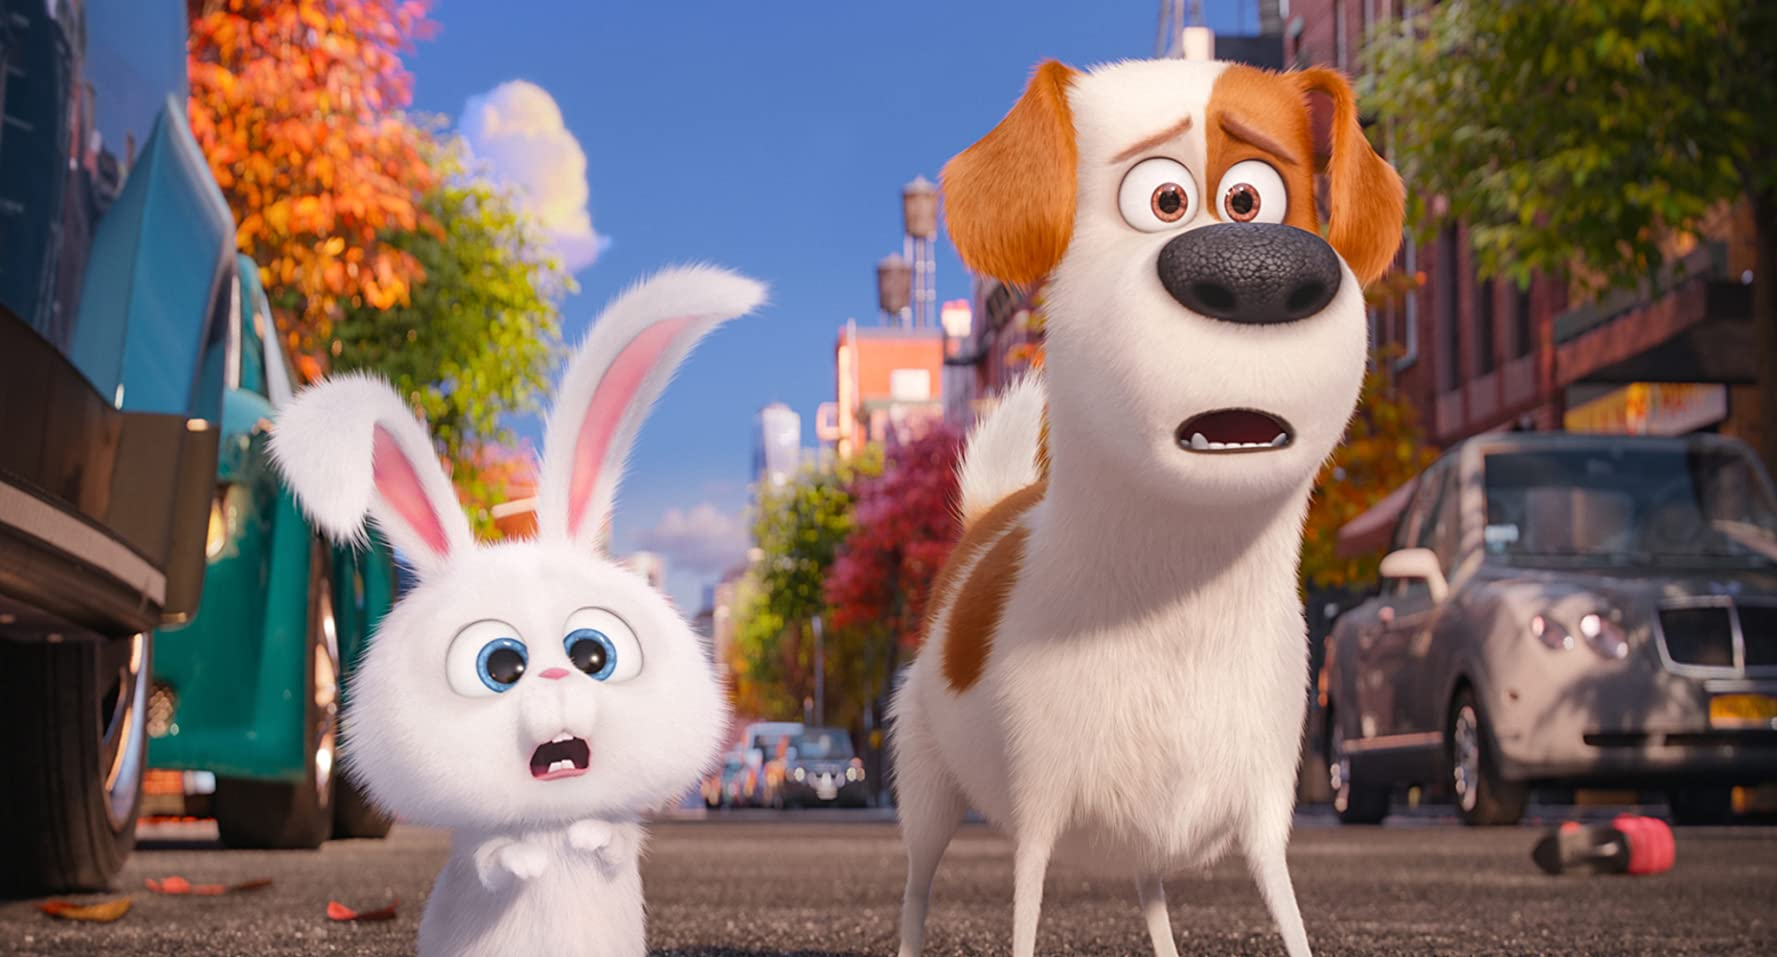 Louis C.K. and Kevin Hart in The Secret Life of Pets (2016)